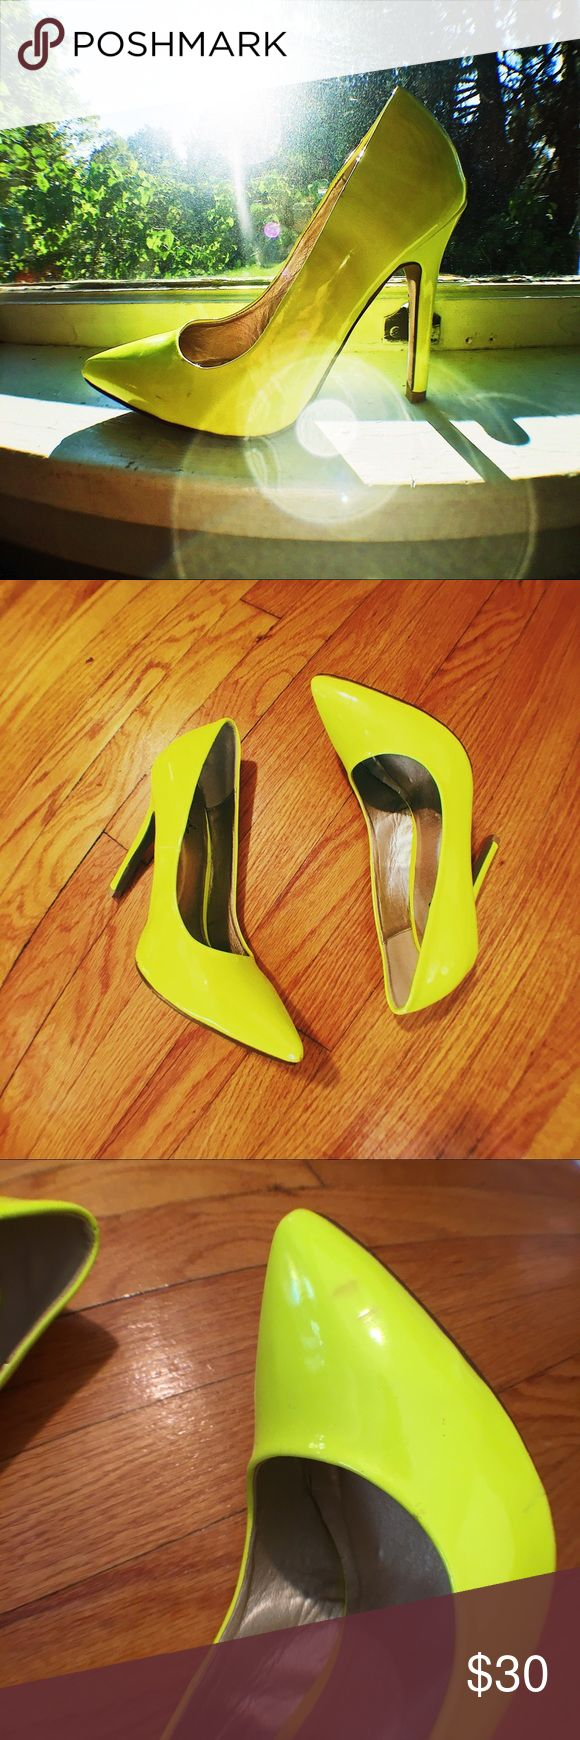 NEW 👠 Highlighter Neon Pumps These are in good condition with some minor signs of wear and some scuffs which are pictured! Please see pictures for heel measurements 😊 Qupid Shoes Heels